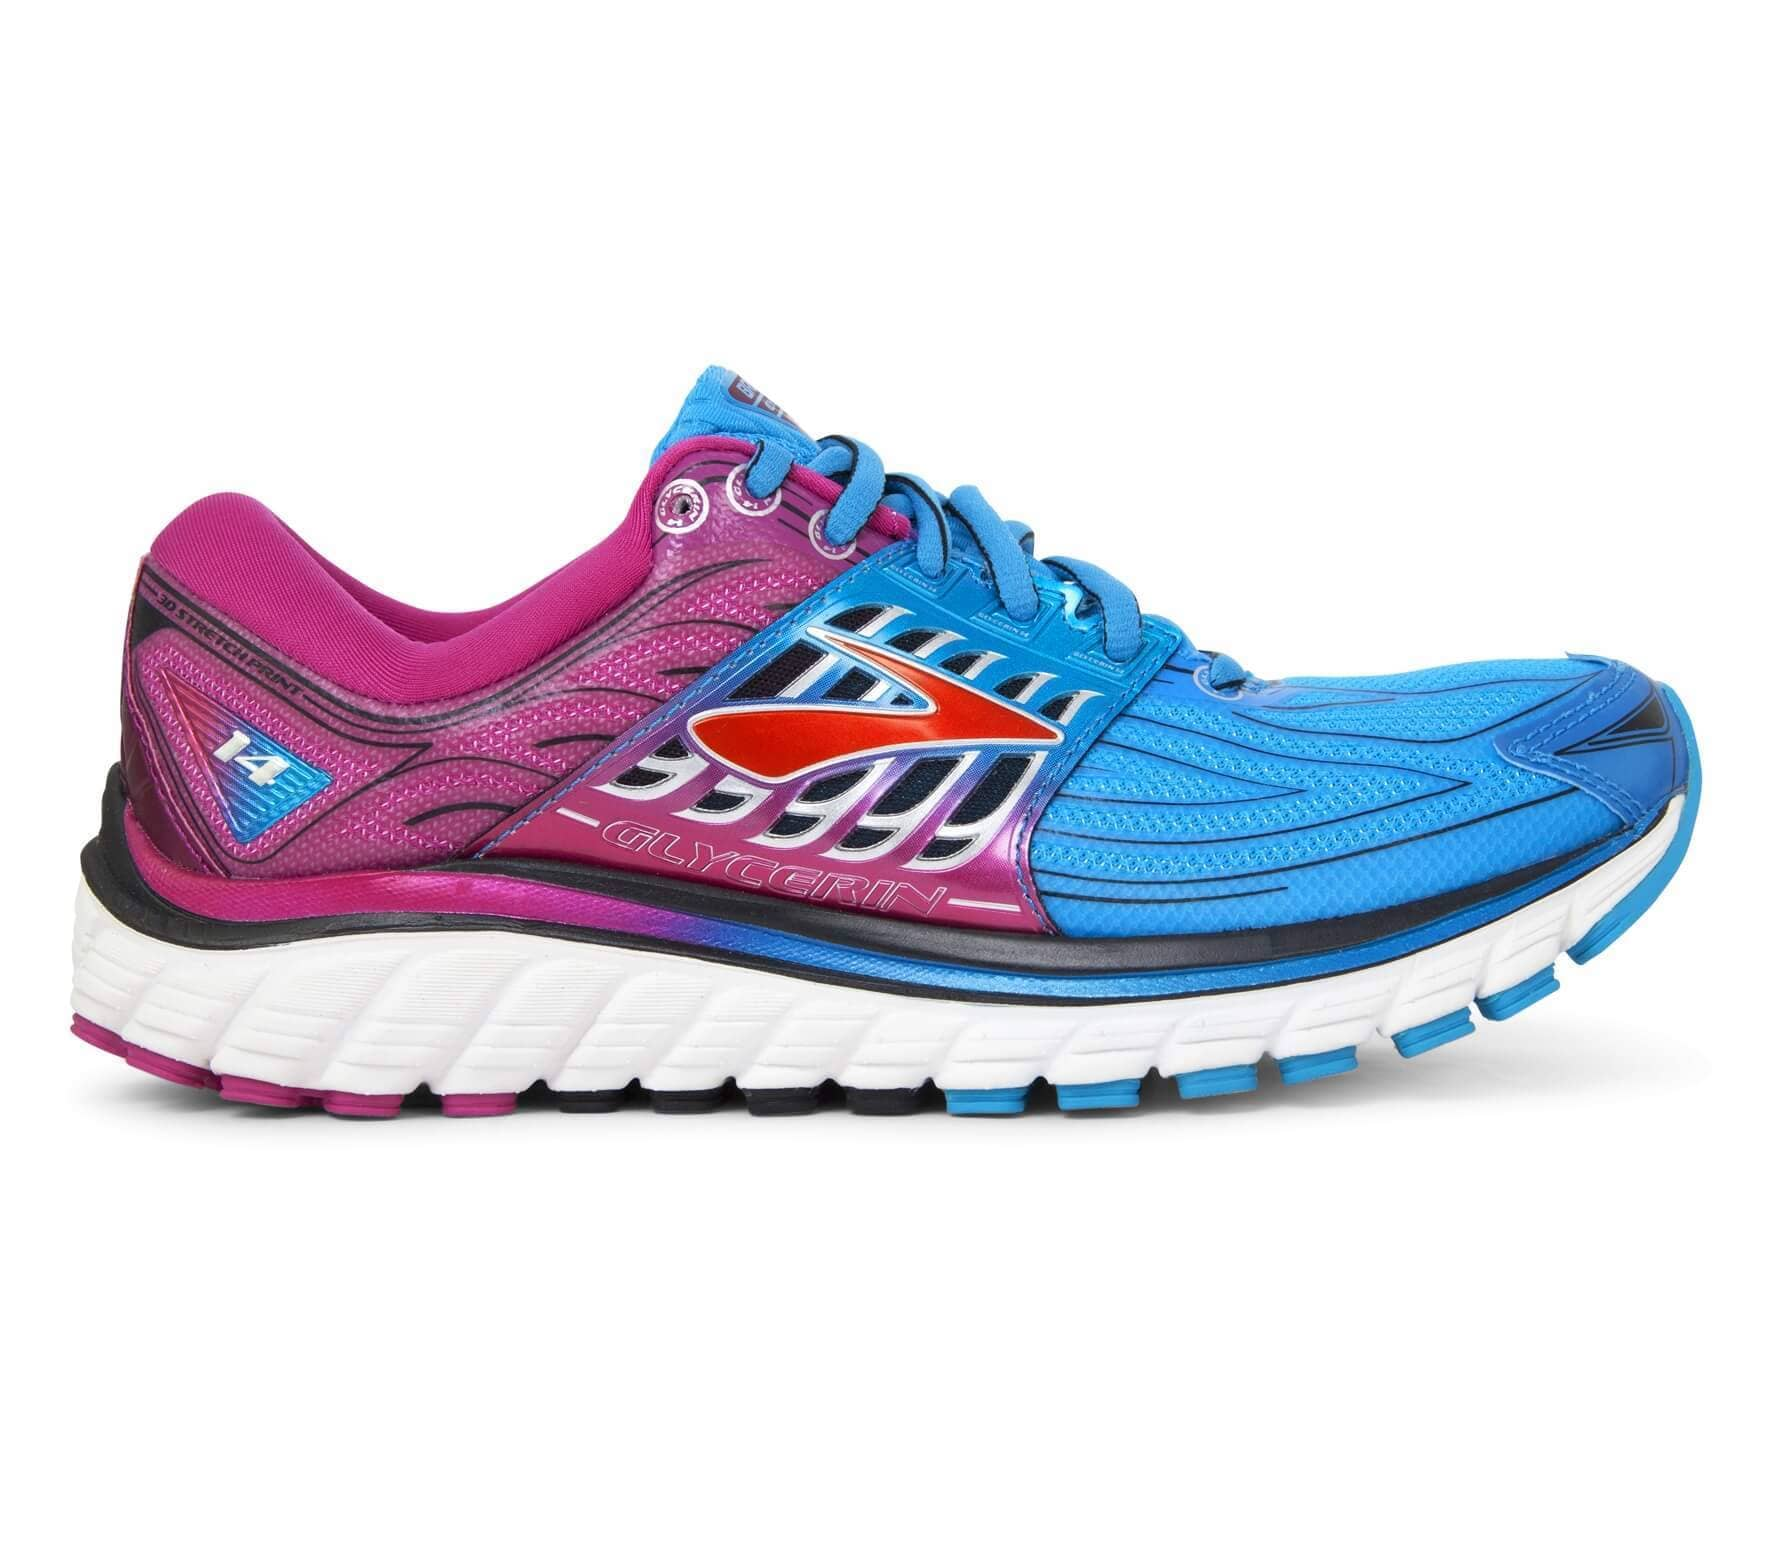 b0e5cac5376ea Brooks - Glycerin 14 women s running shoes (blue pink) - buy it at ...